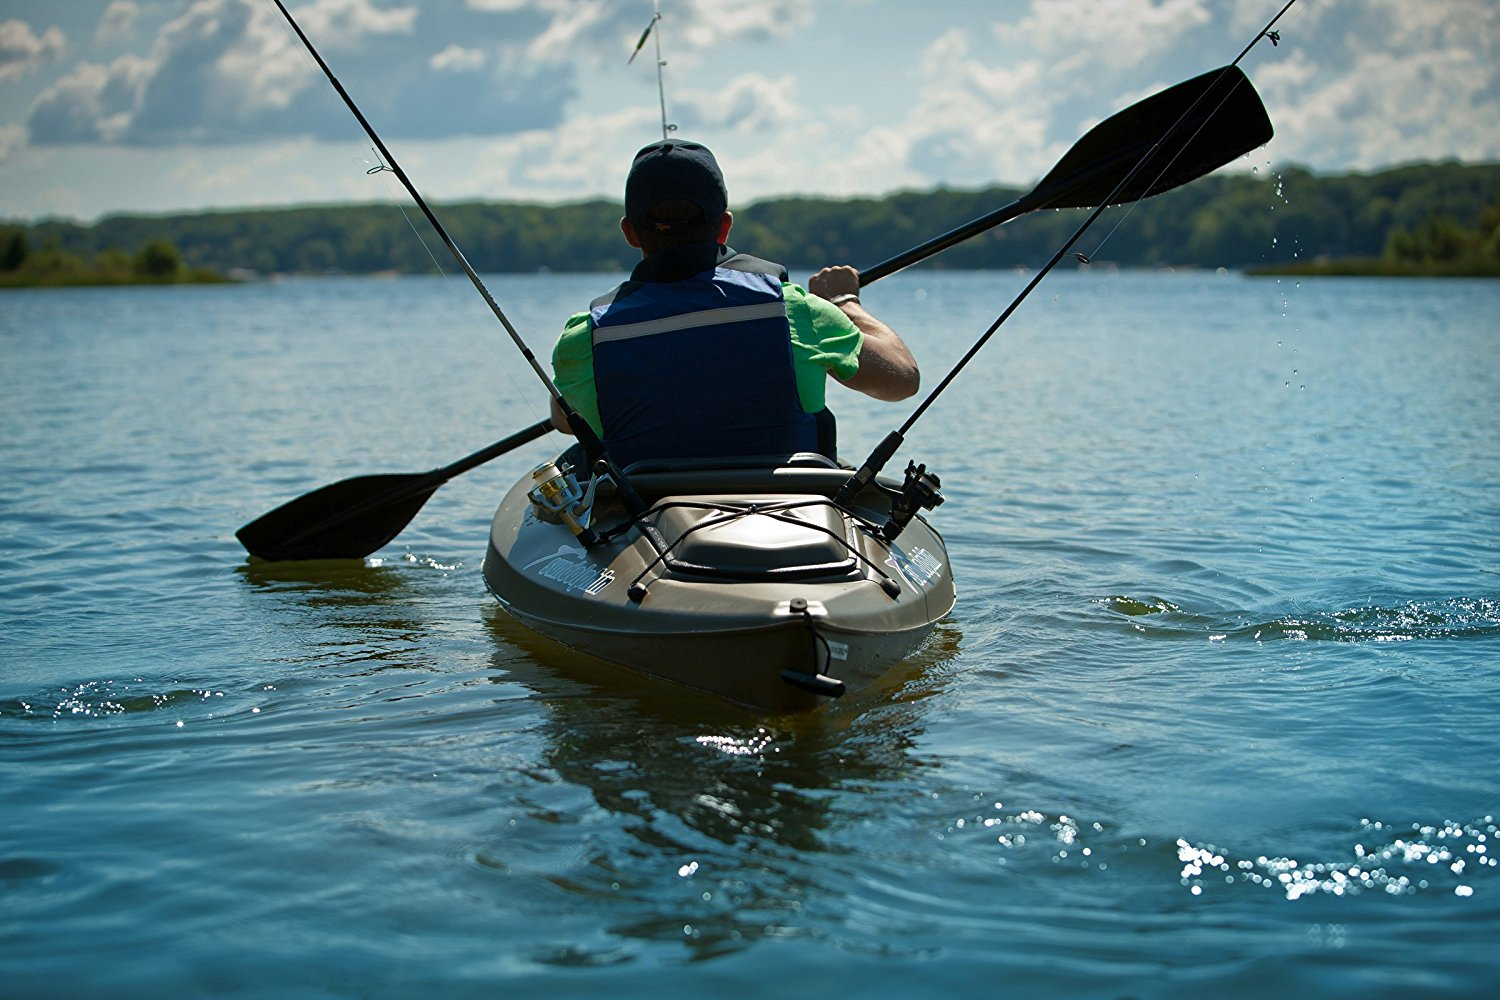 Best fishing kayaks under 400 reviews fishin things for Fishing kayaks for sale cheap